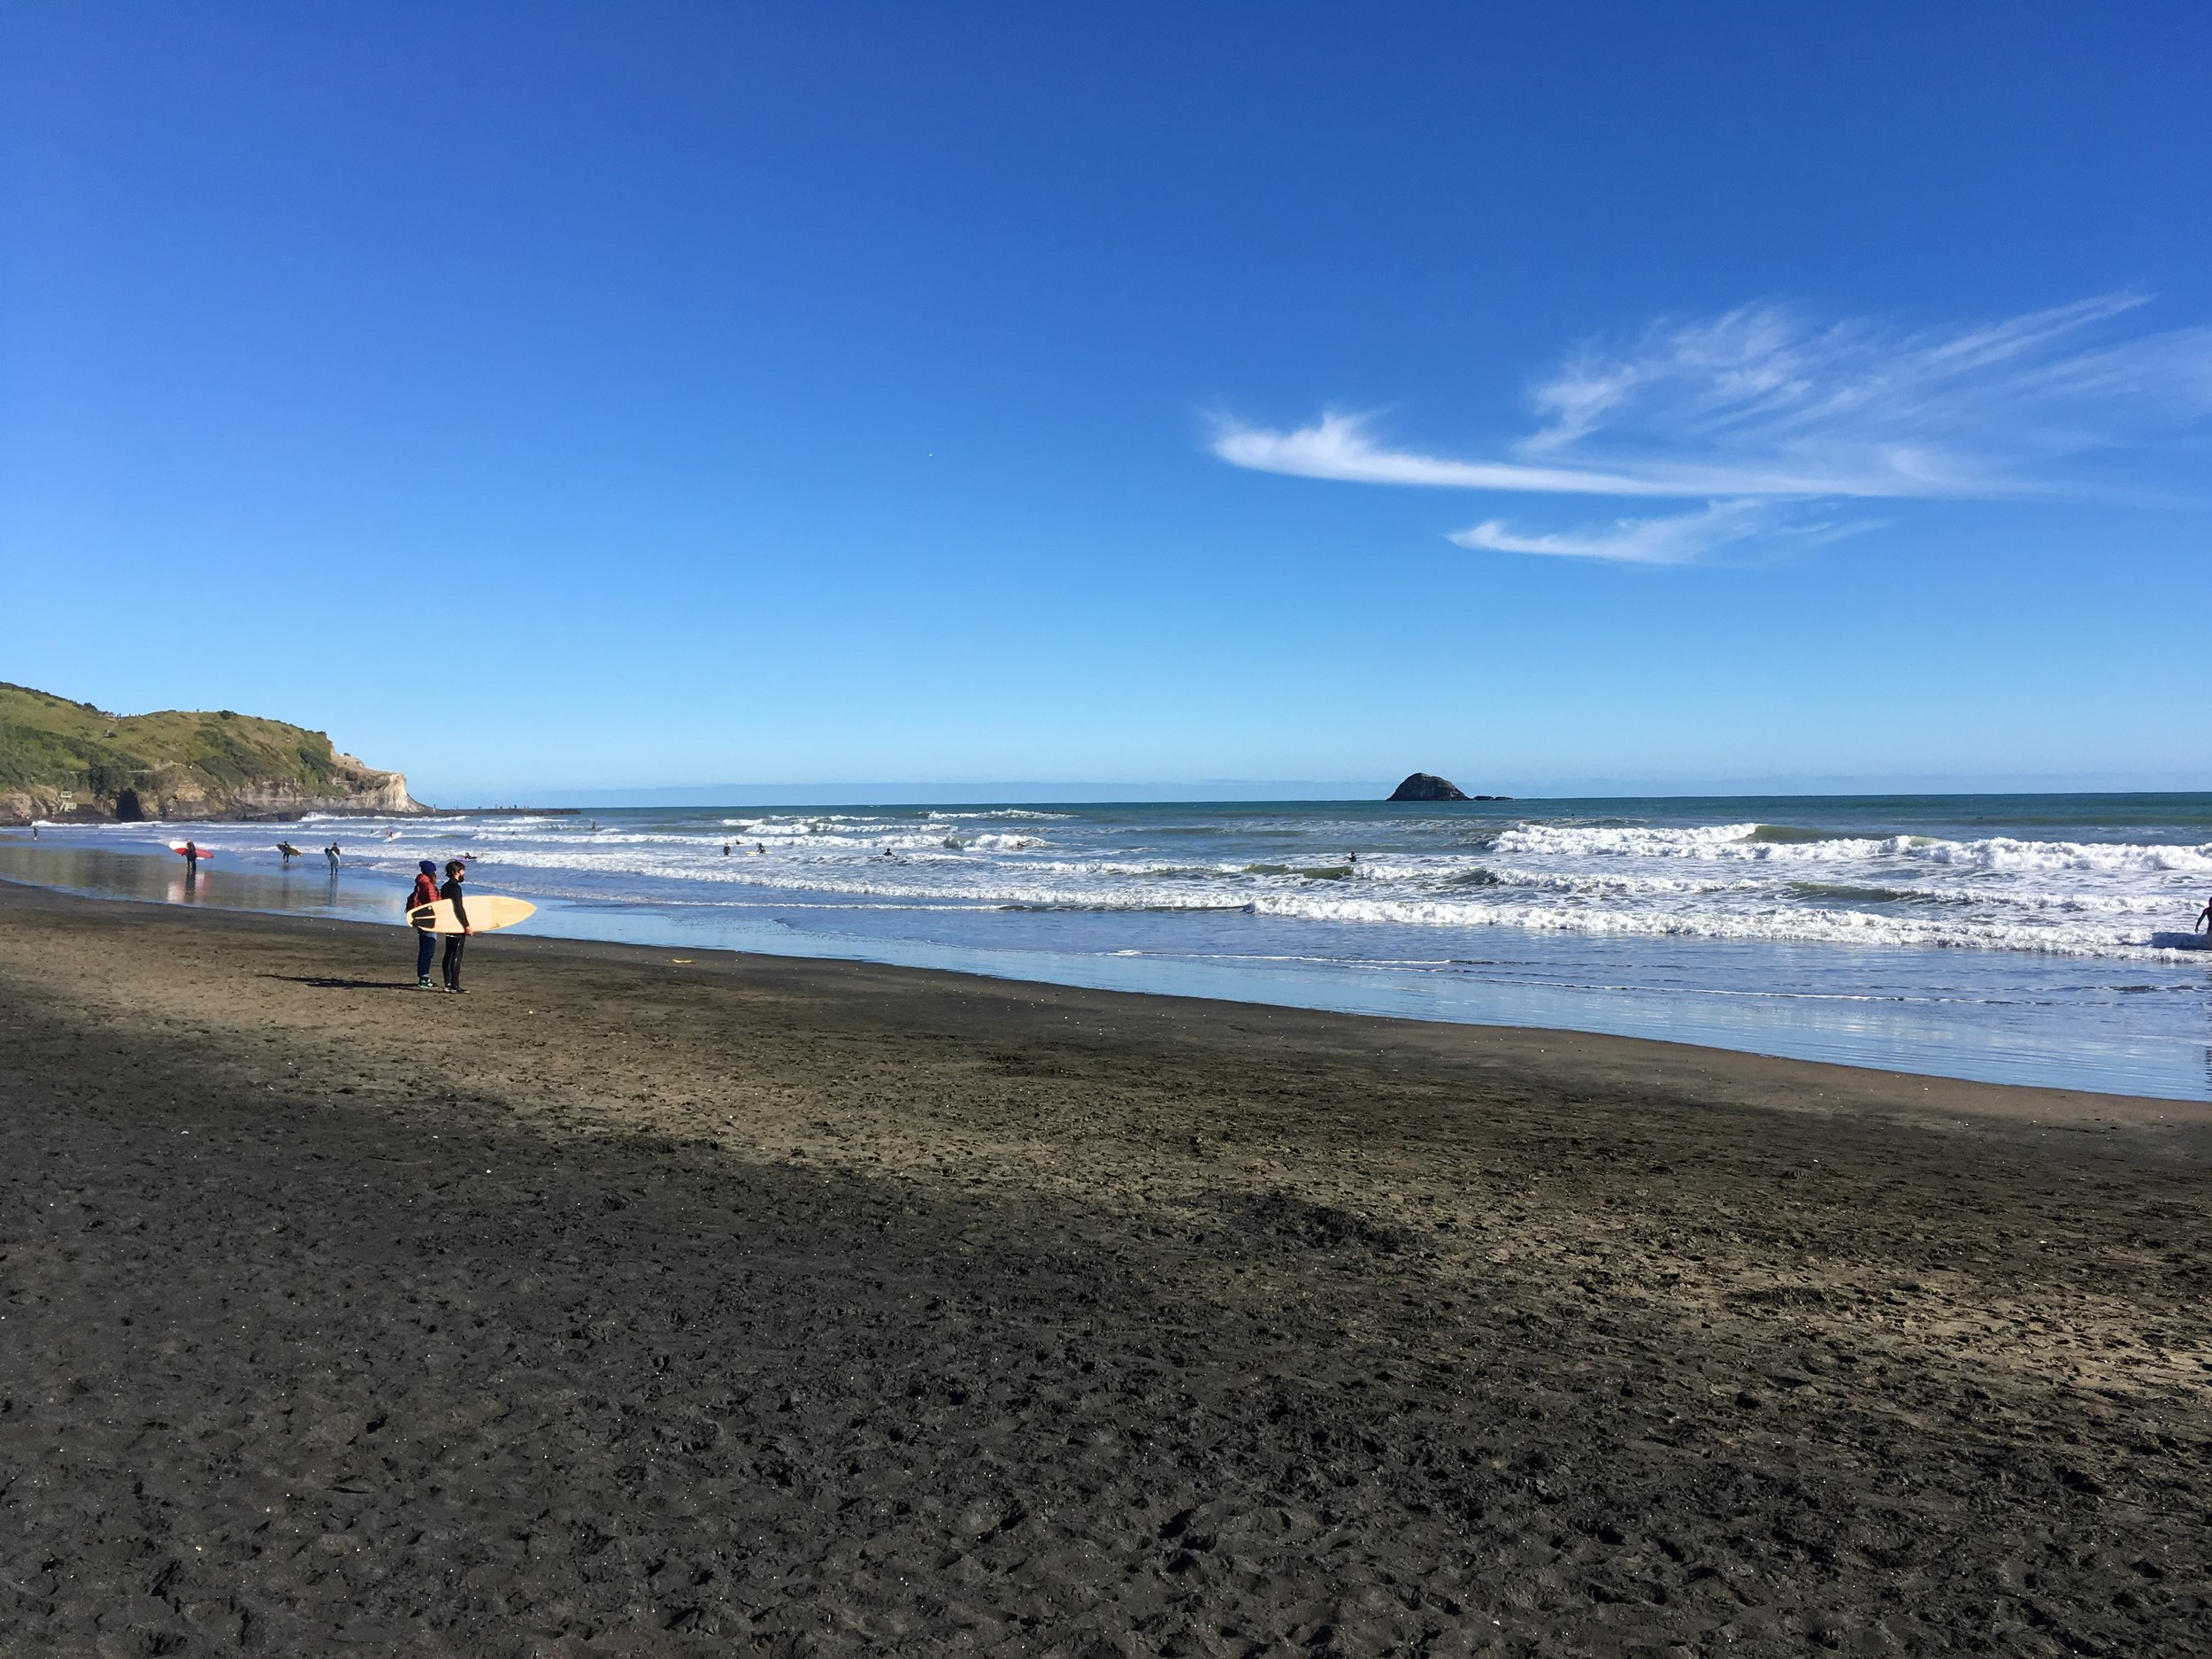 It was an absolutely stunning day out at Muriwai!